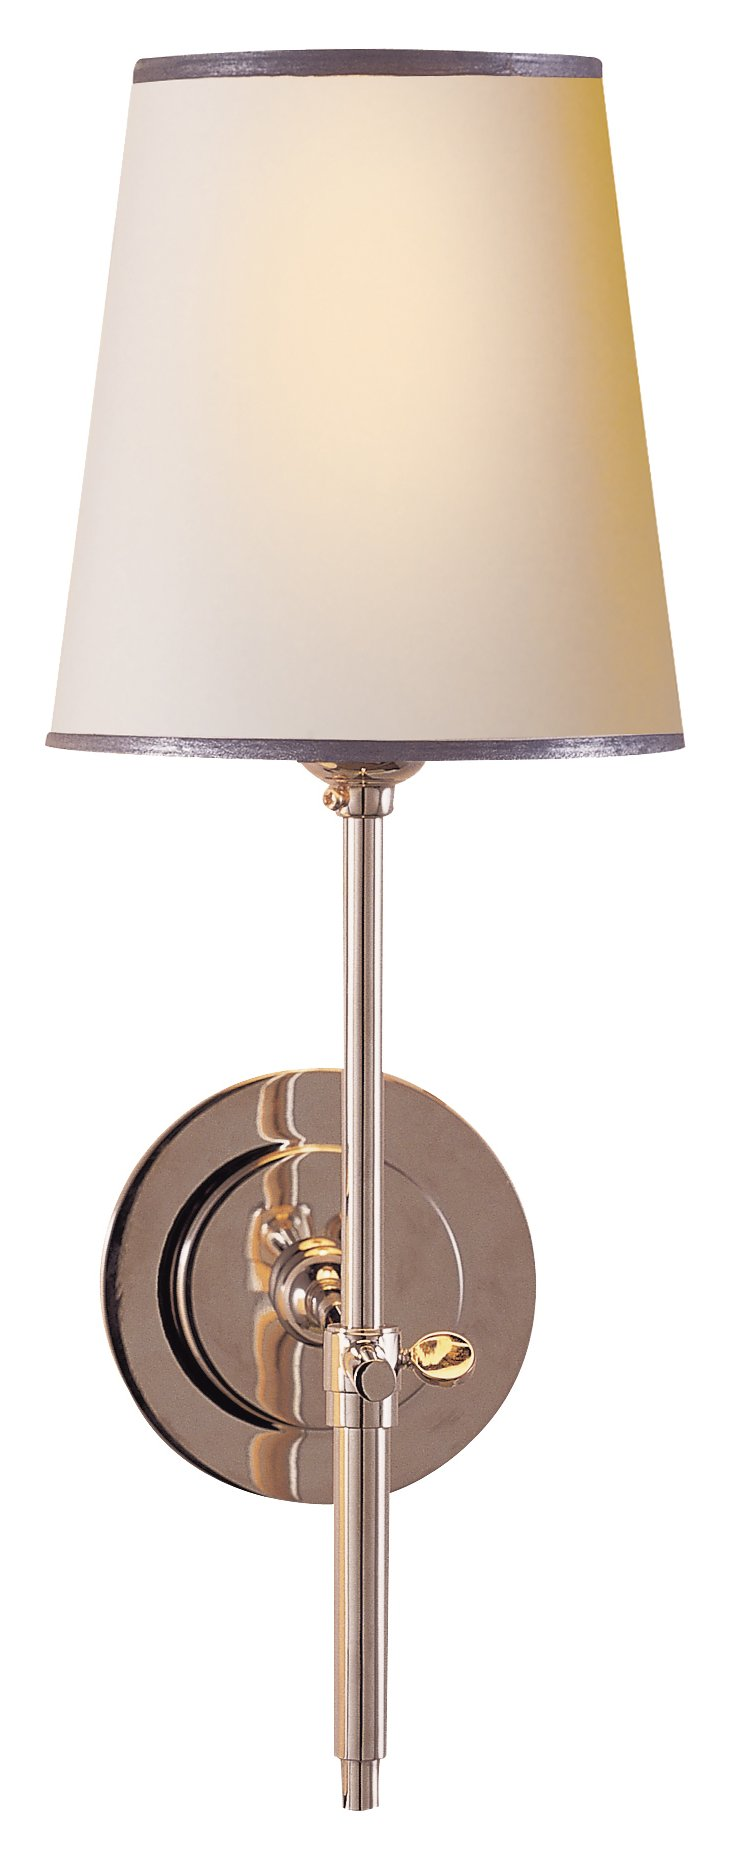 Bryant 1-Light Wall Sconce, Silver